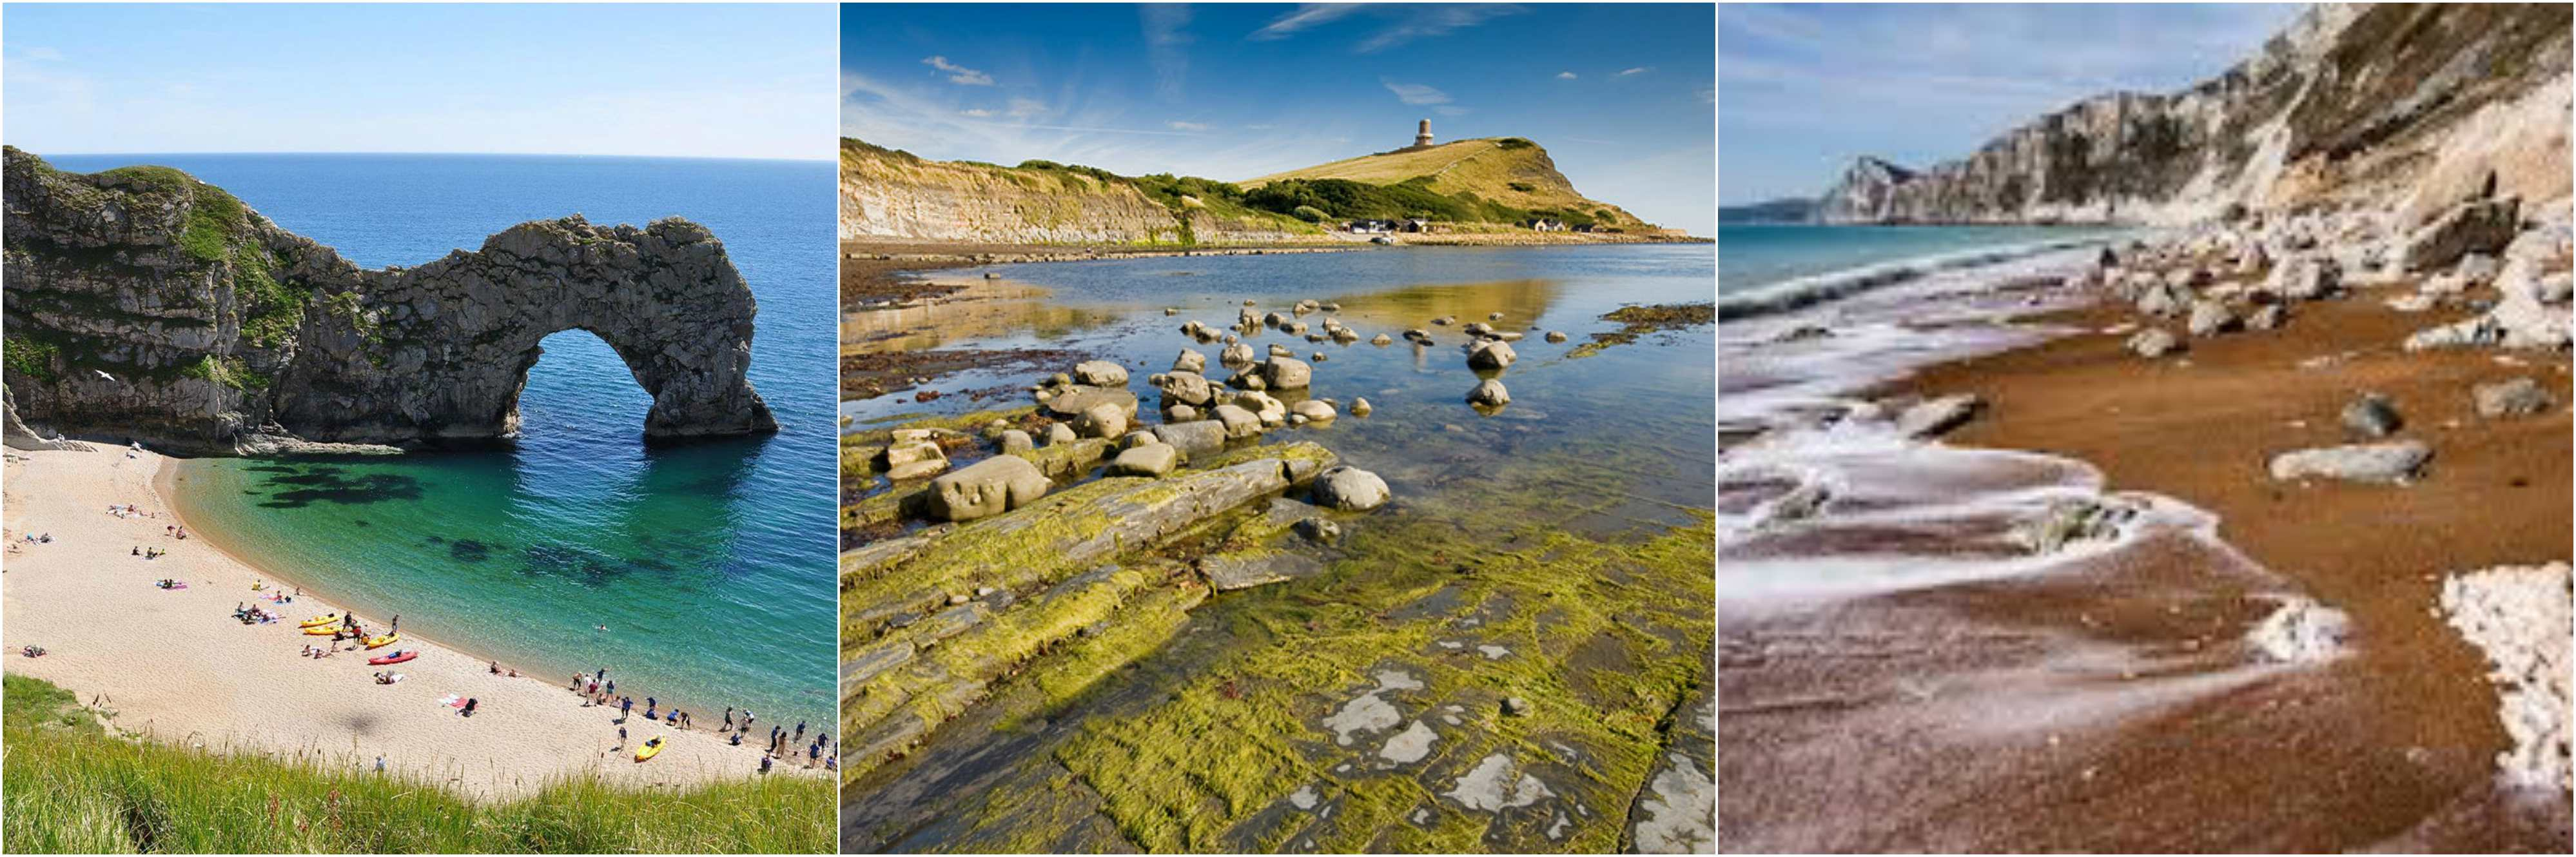 Visit Lulworth Cove Kimmeridge Ringstead Bay Durdle Door or Worbarrow Bay with its deserted village of Tyneham. & Durdle Door | Riviera Hotel Bournemouth